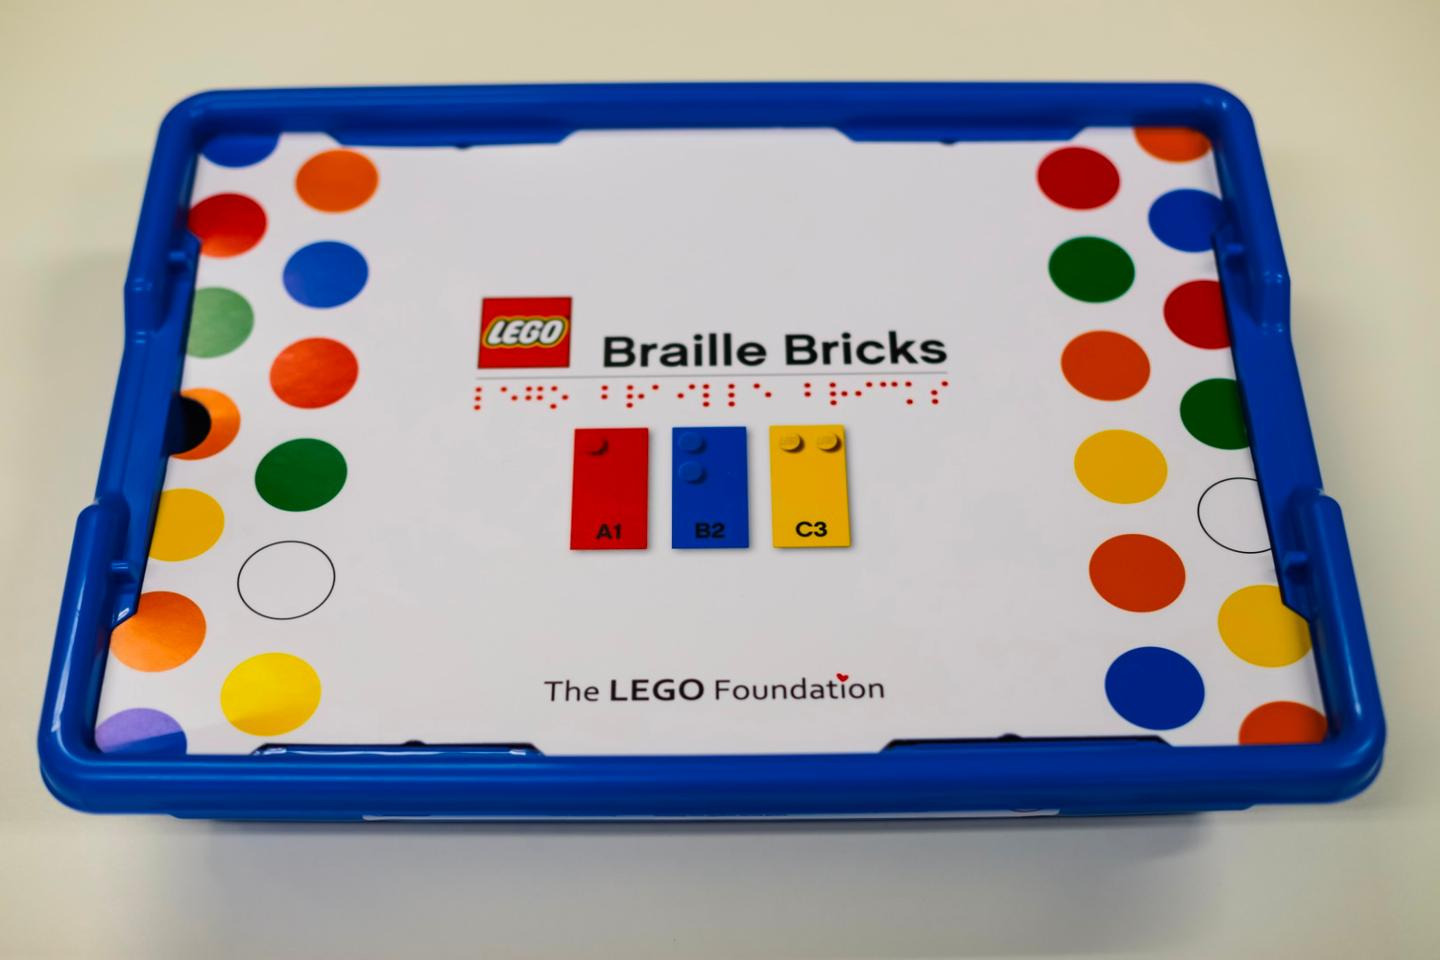 The Lego Braille Bricks kit will be distributed free of charge to select institutions in 2020